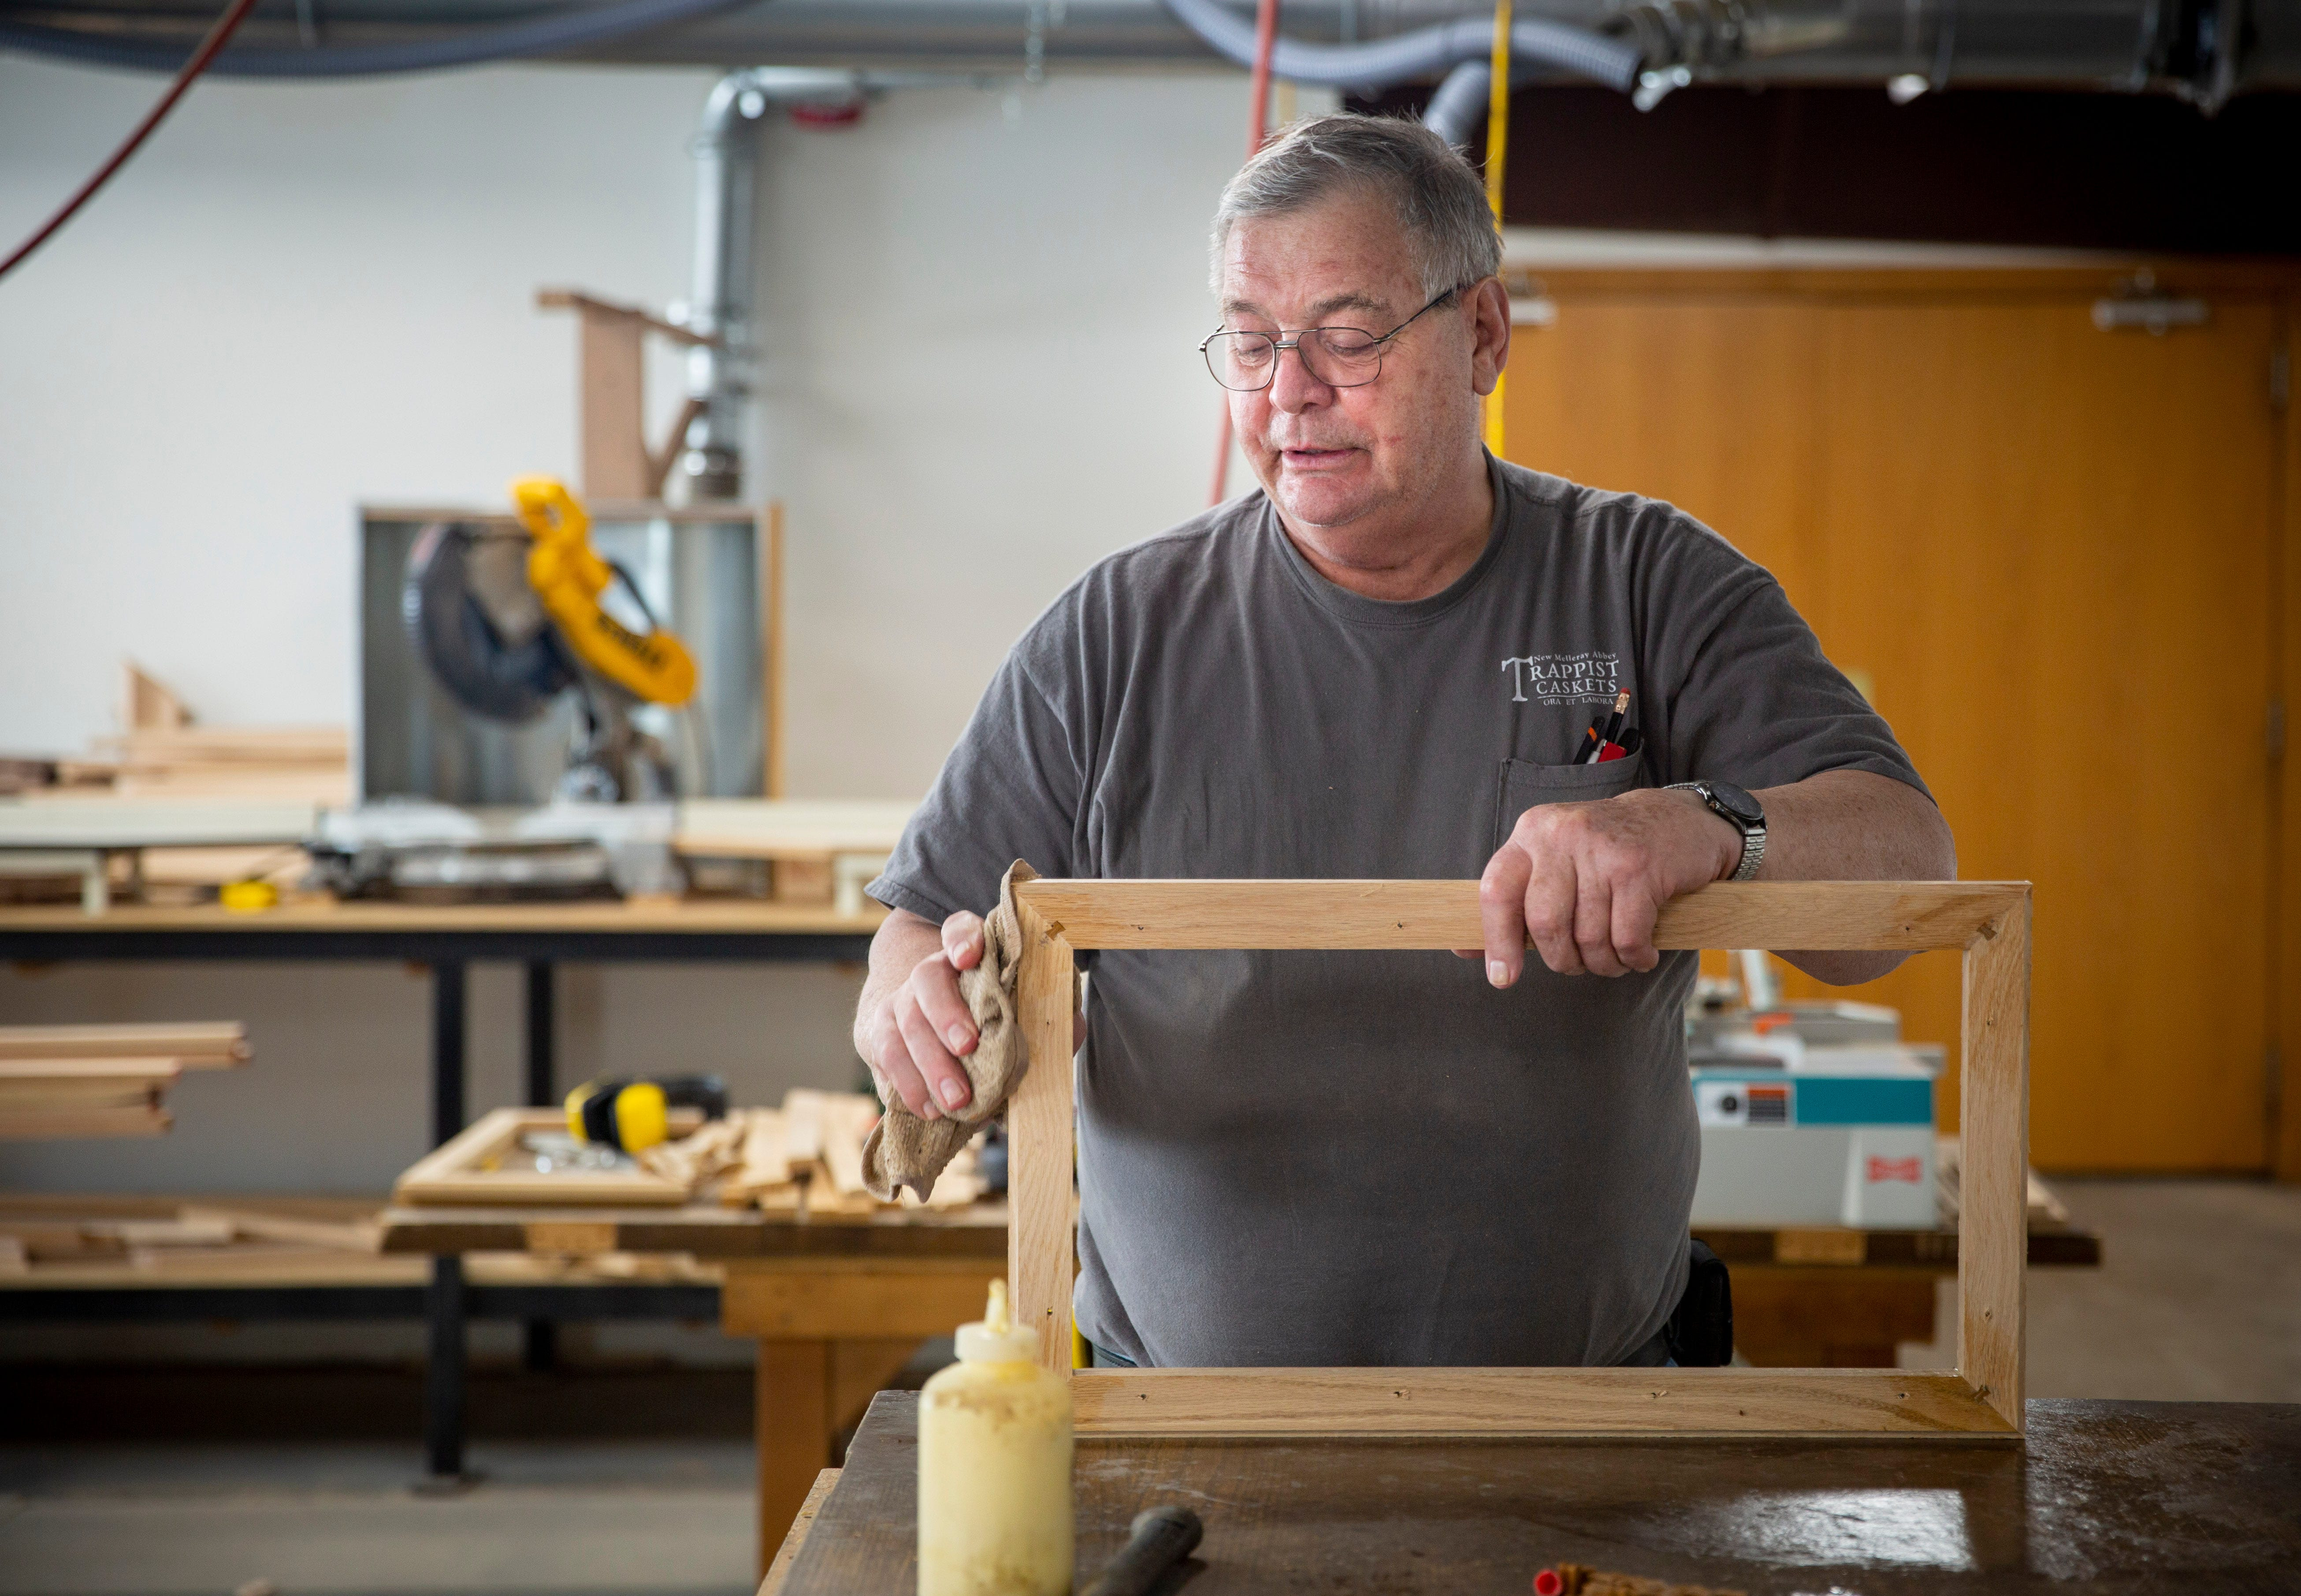 Denny Felton hand-builds caskets in a workshop near the New Melleray Abbey southwest of Dubuque on March 16, 2021.